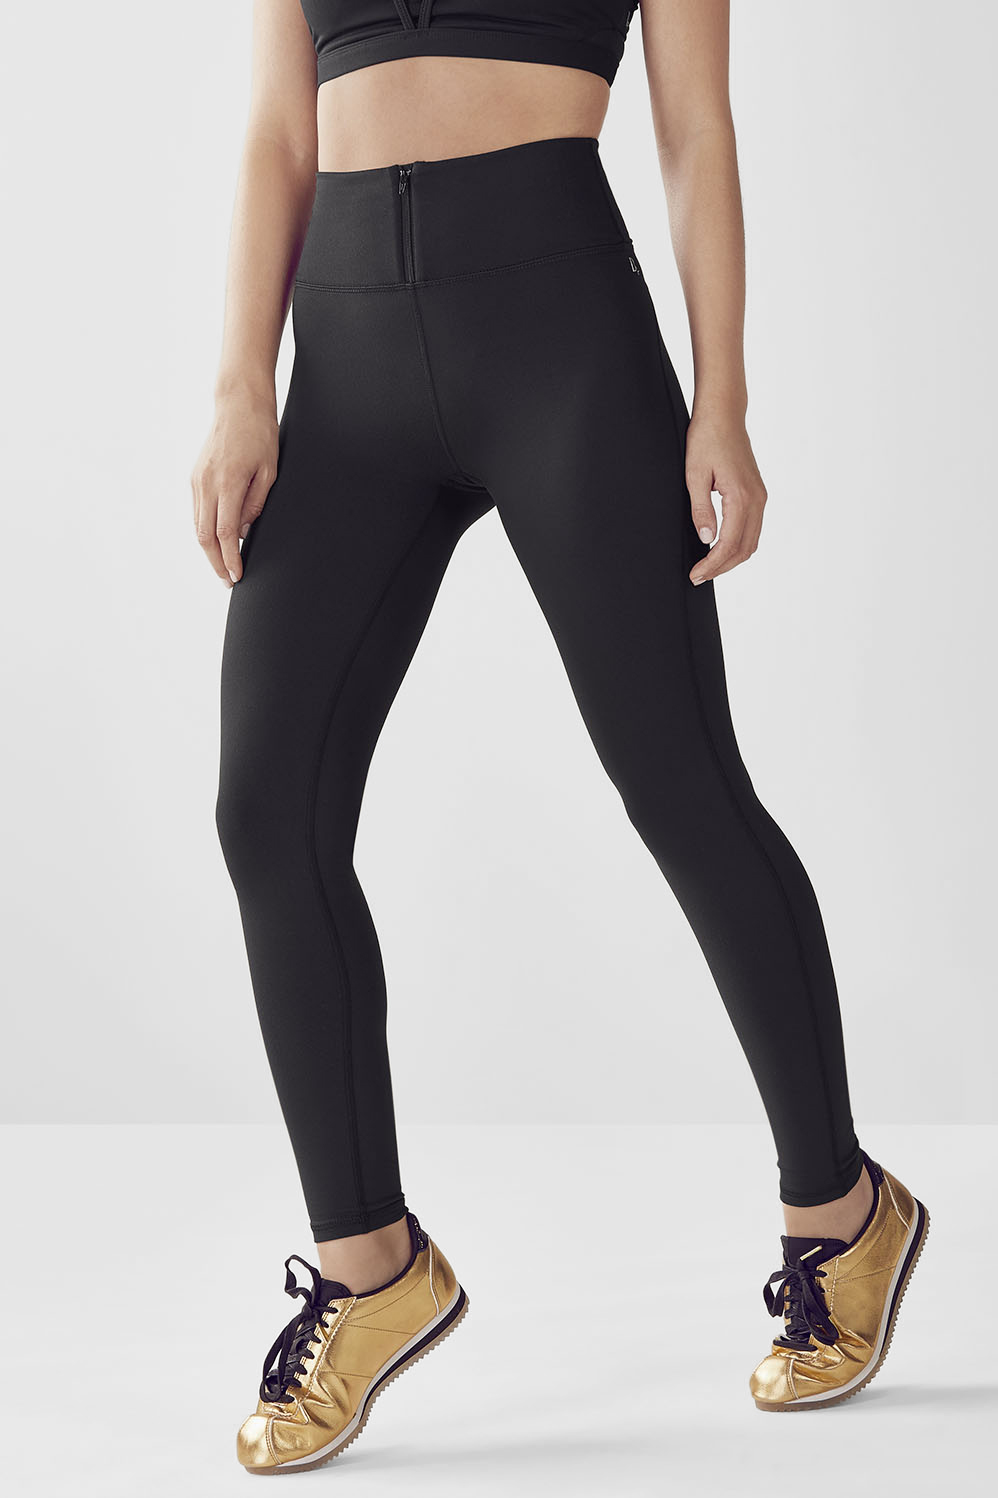 4b53aa3c46fb8 High-Waisted Statement PowerHold® Legging - Fabletics